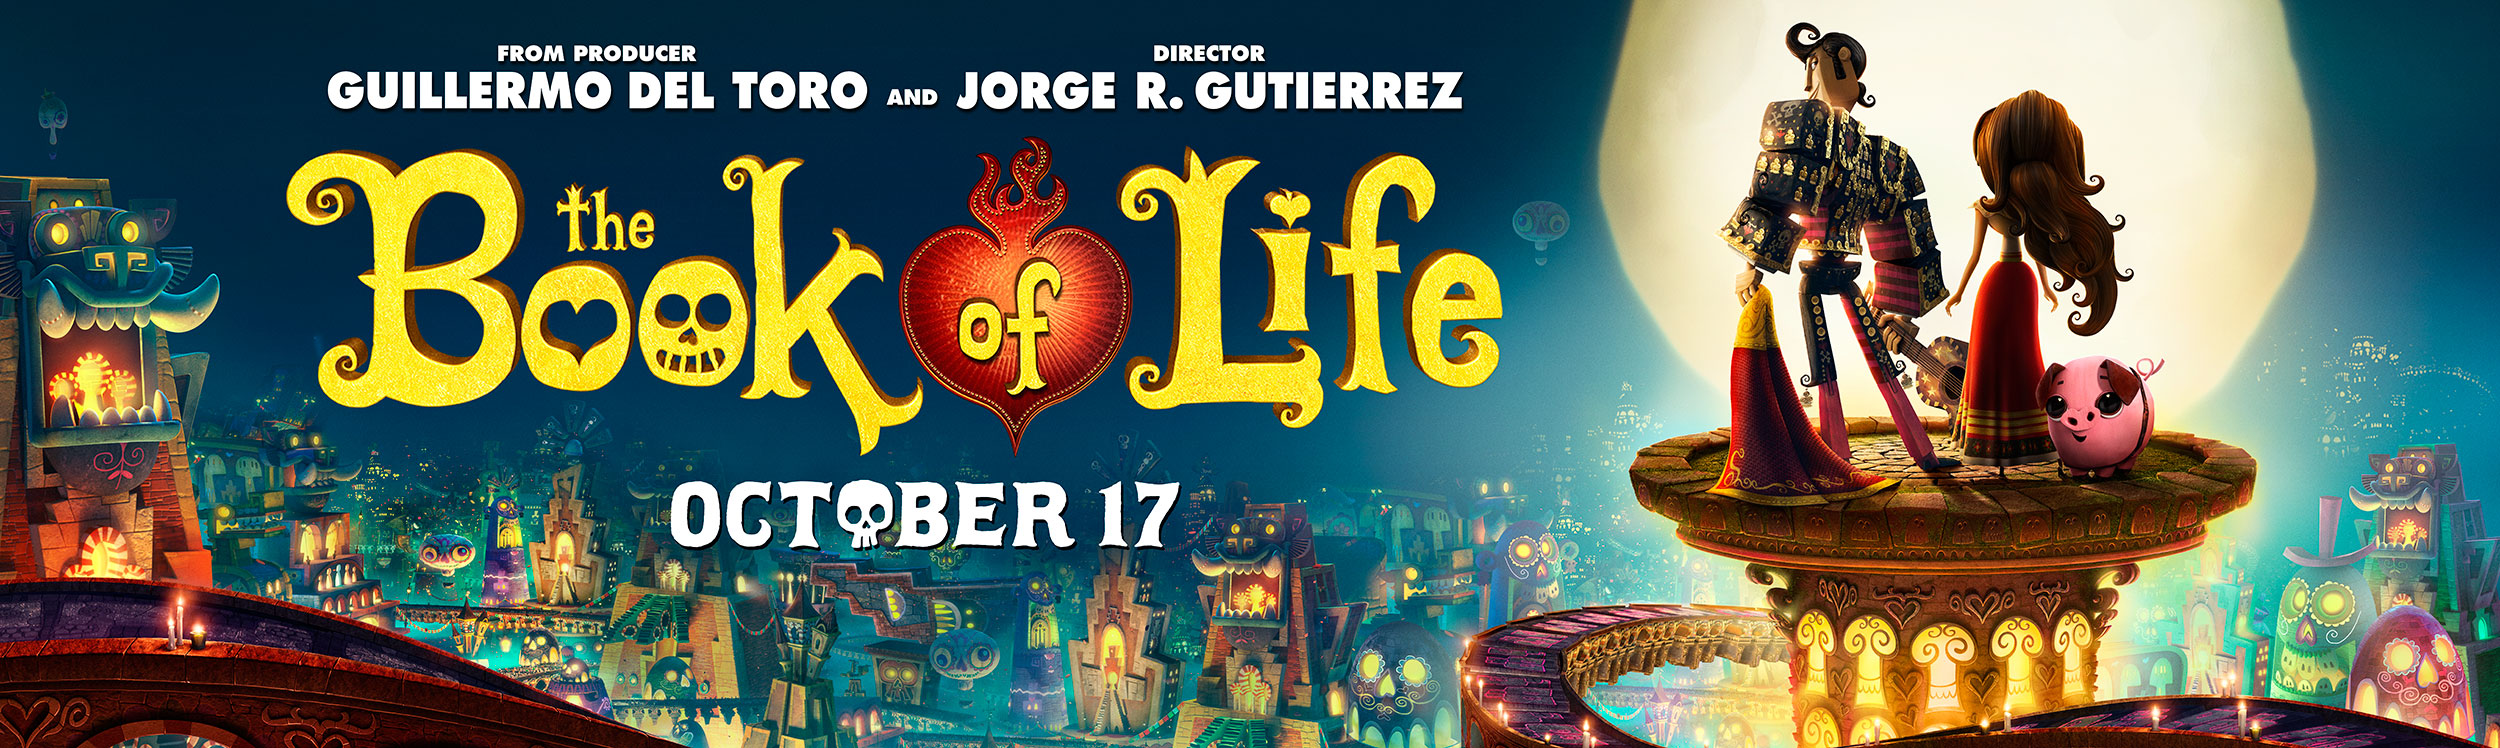 The Book of Life Billboard